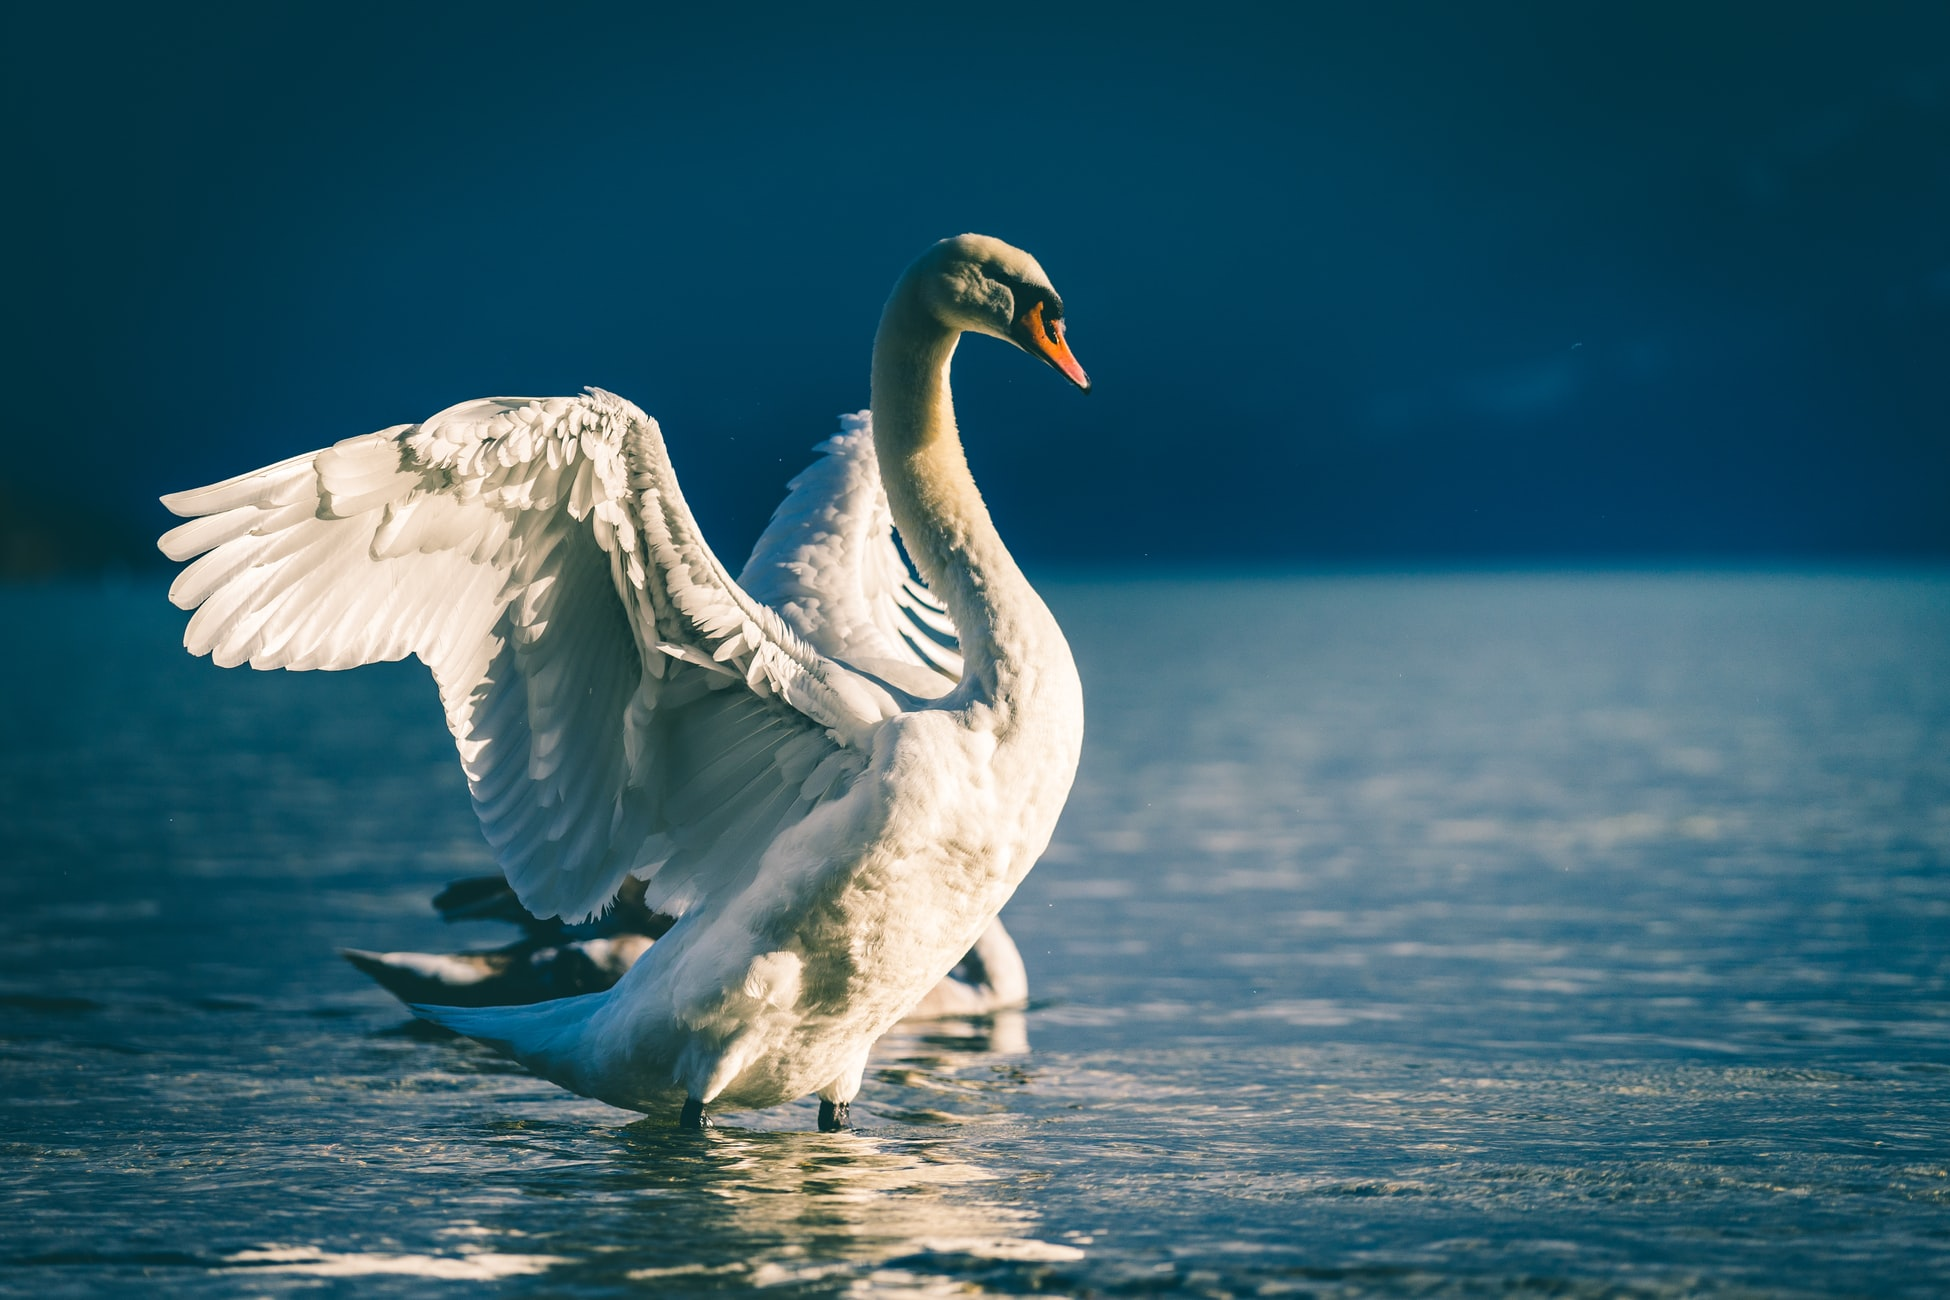 Trumpeter Swan Cygnets Released At Yellowstone To Boost Population